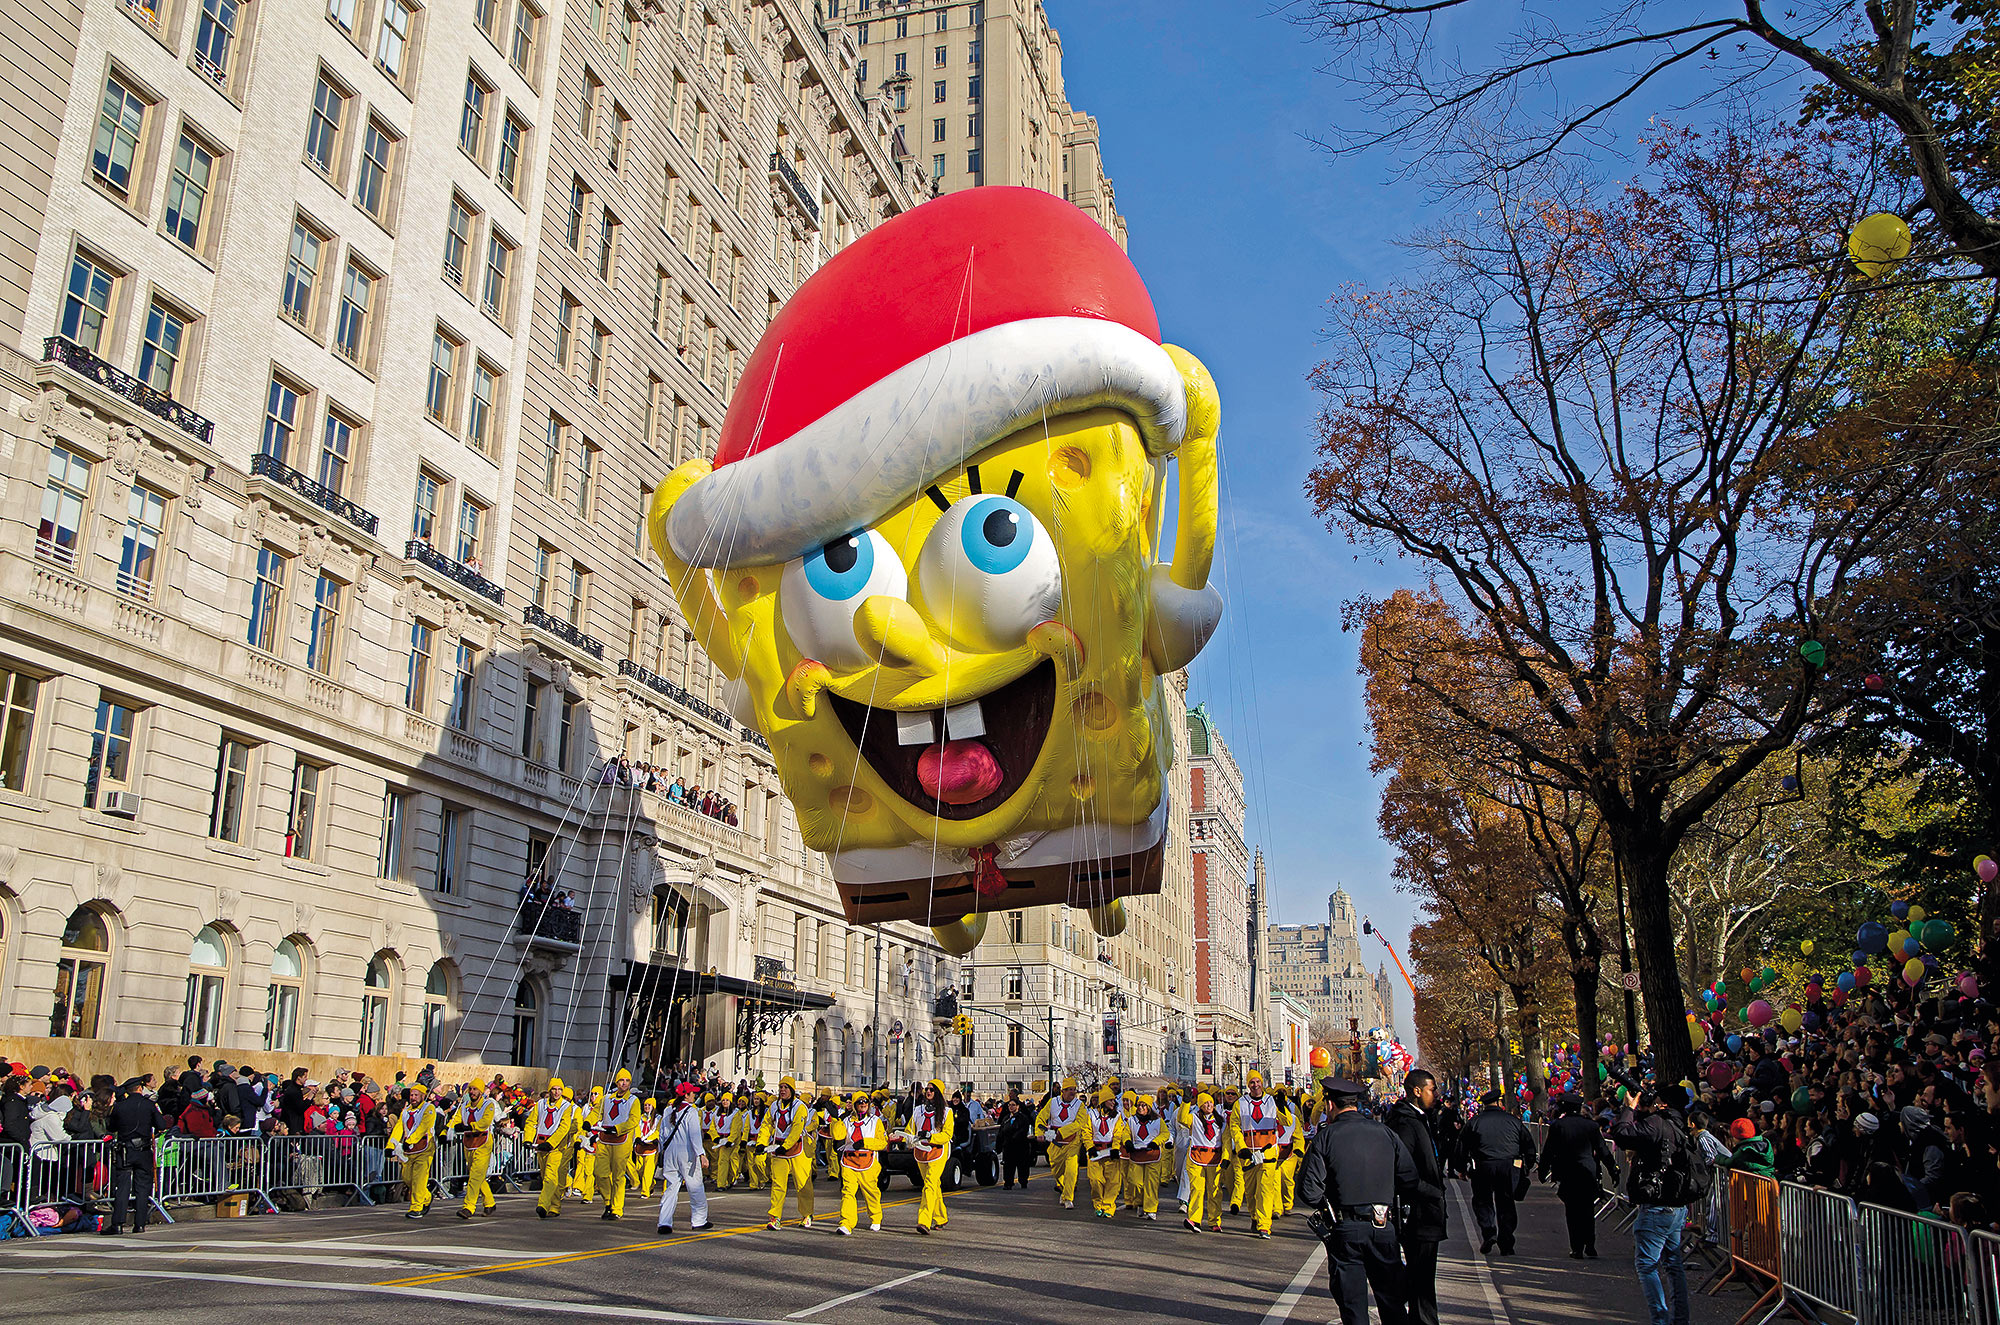 Which character has more appearances than any other as a Macy's Thanksgiving Day Parade balloon?